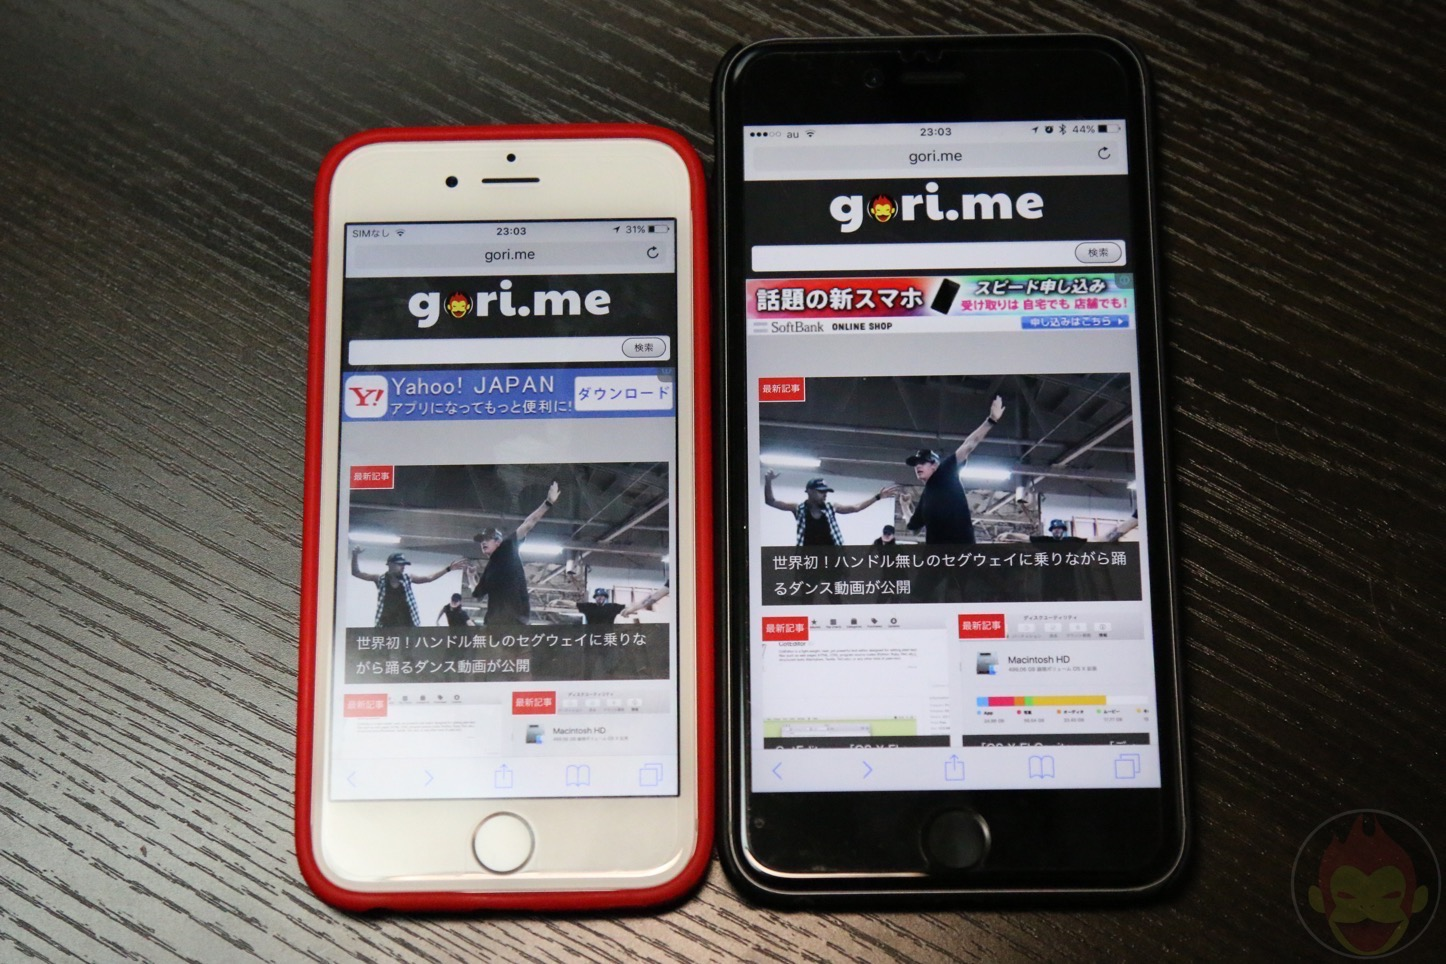 「iPhone 6s」と「iPhone 6s Plus」を徹底比較